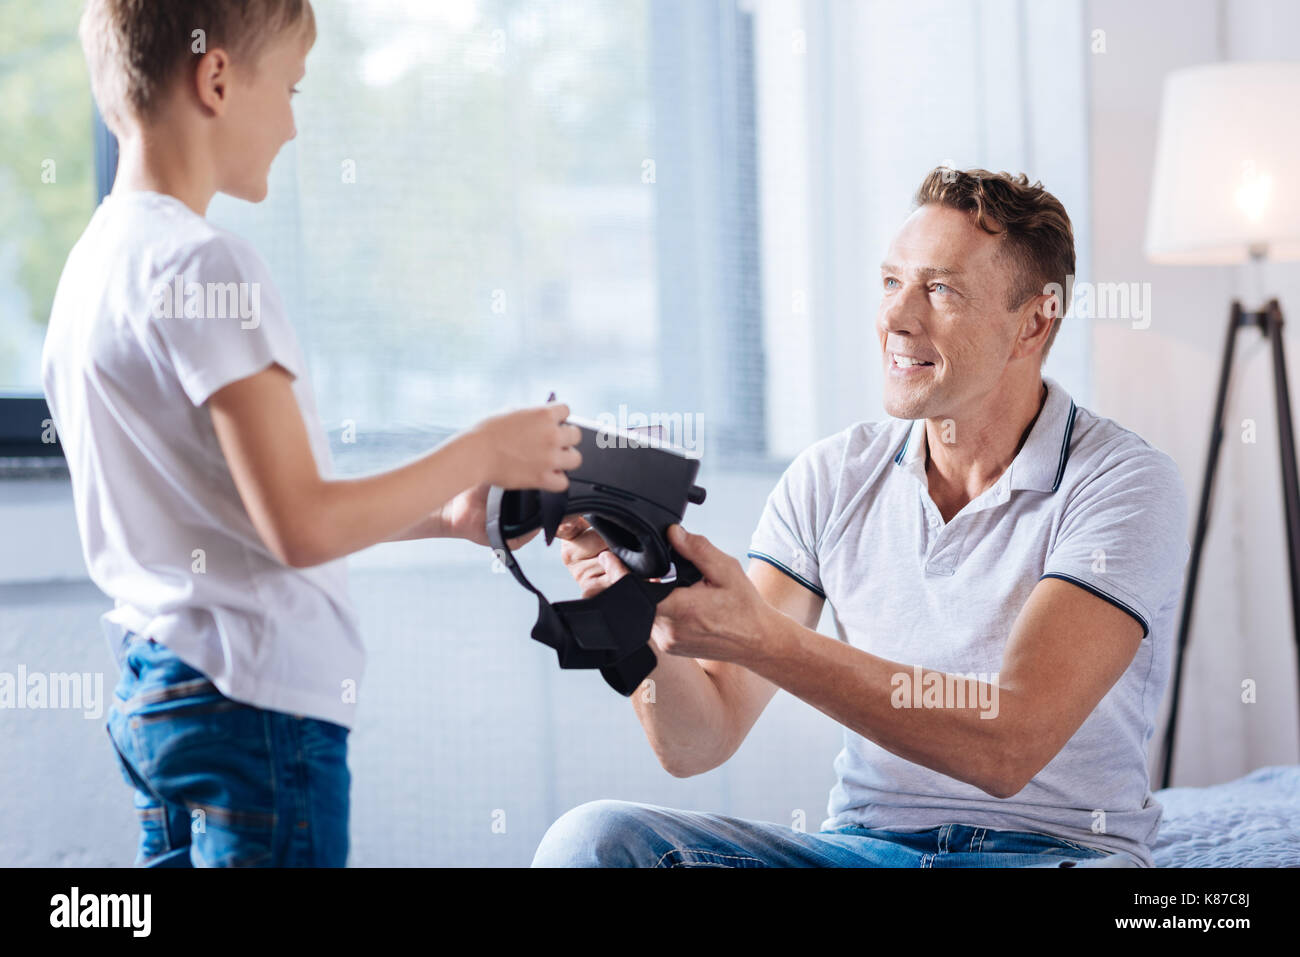 Pre-teen boy giving his father a VR headset - Stock Image